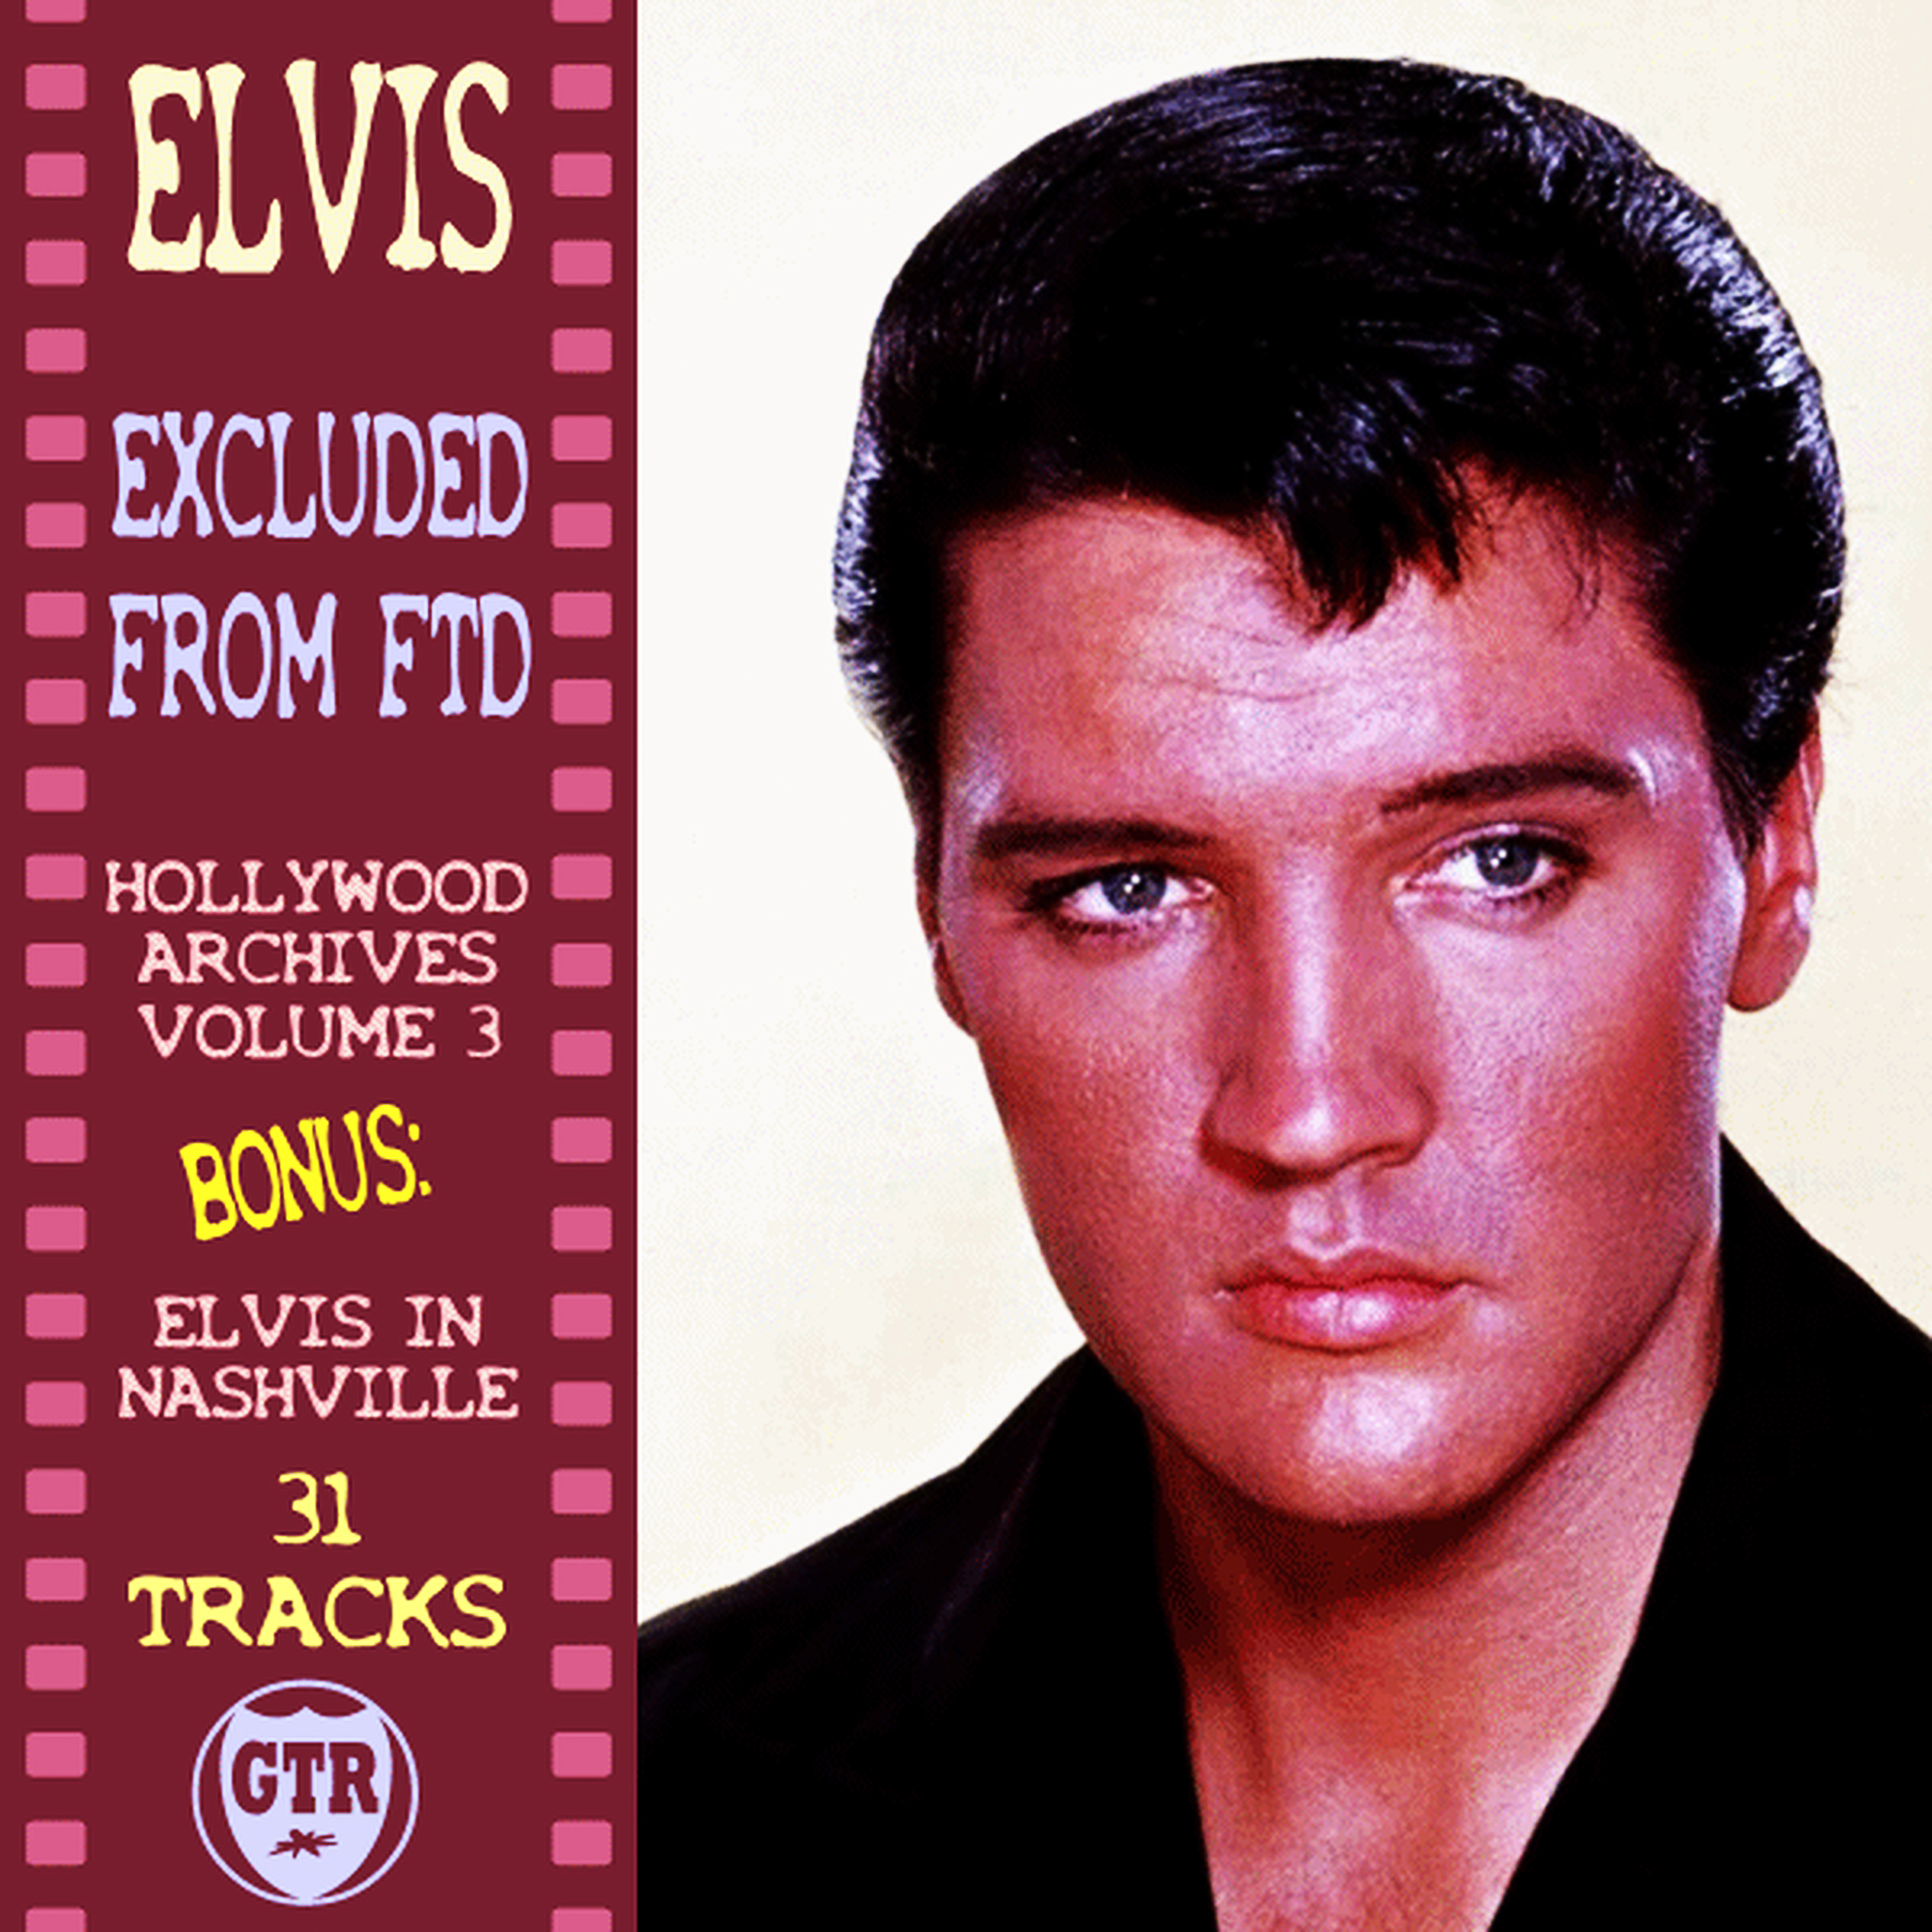 Excluded From FTD - Hollywood Archives Volume 3